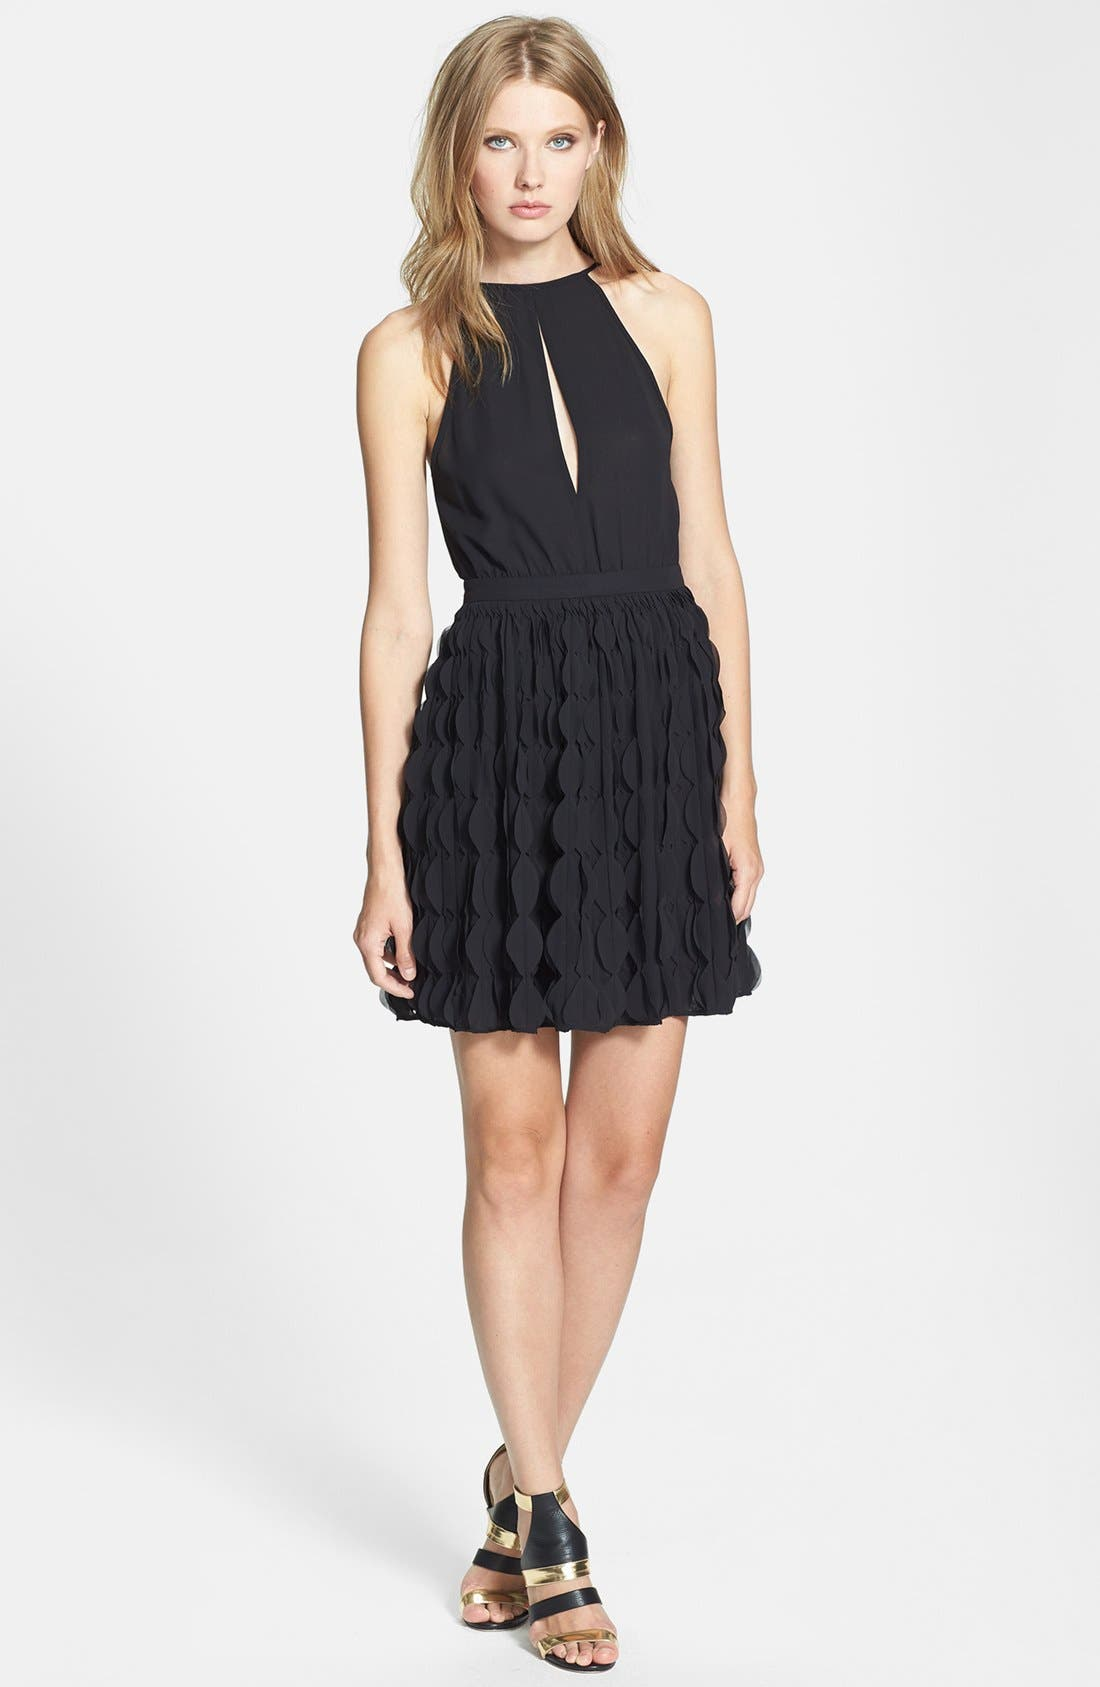 Alternate Image 1 Selected - Diane von Furstenberg 'Gia' Ruffle Skirt Fit & Flare Dress